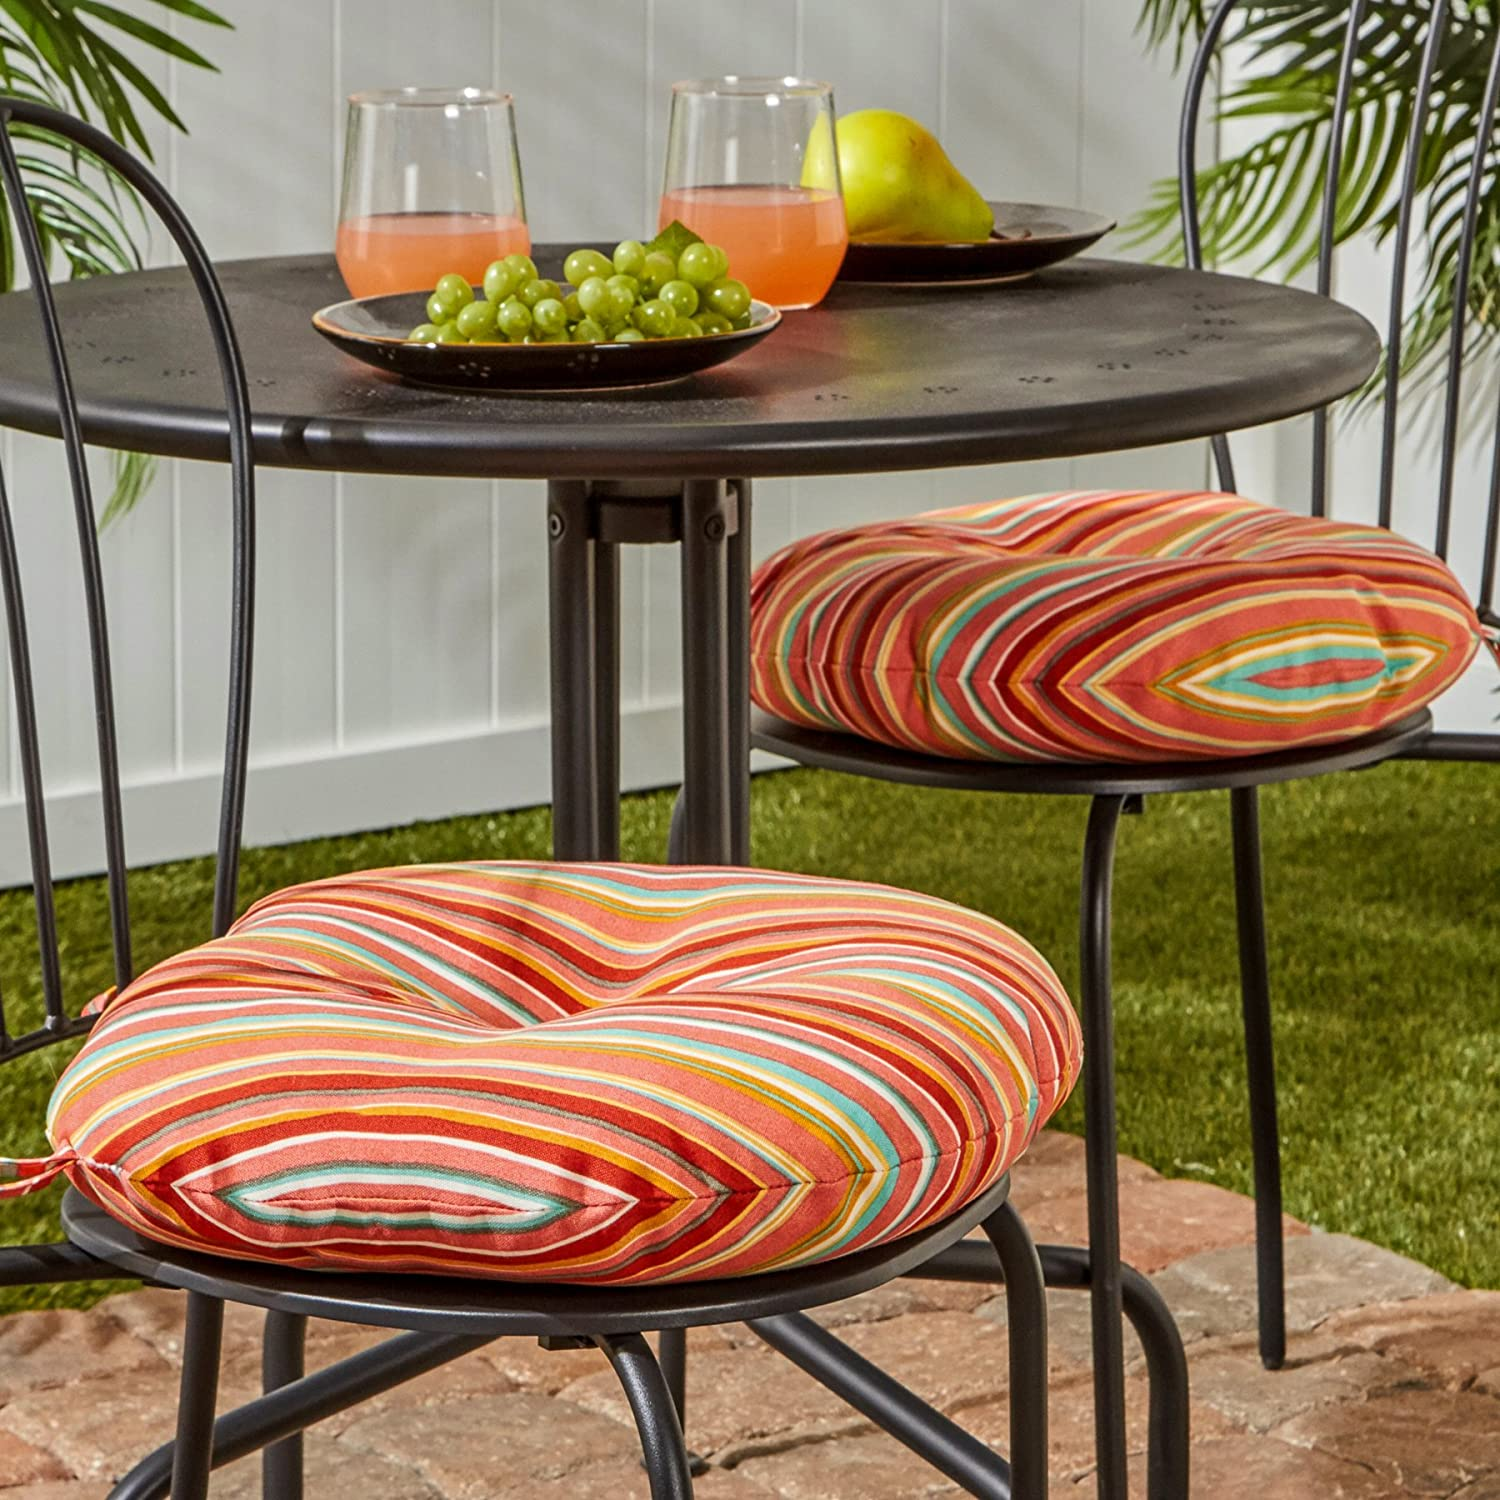 Amazon.com: Greendale Home Fashions 15 pulgadas. Cojín ...